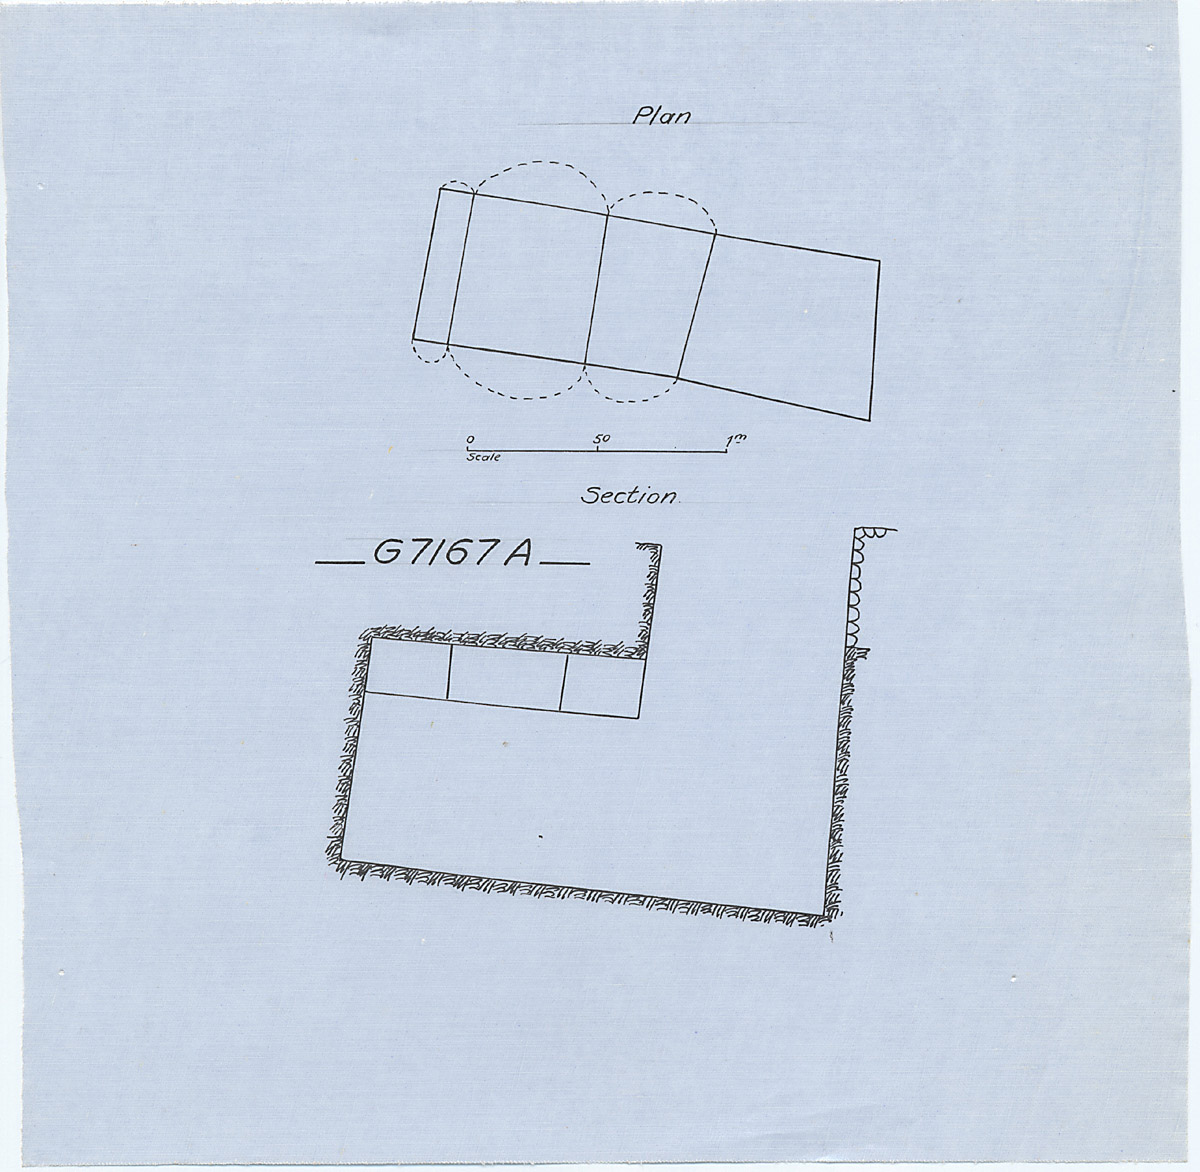 Maps and plans: G 7167, Shaft A